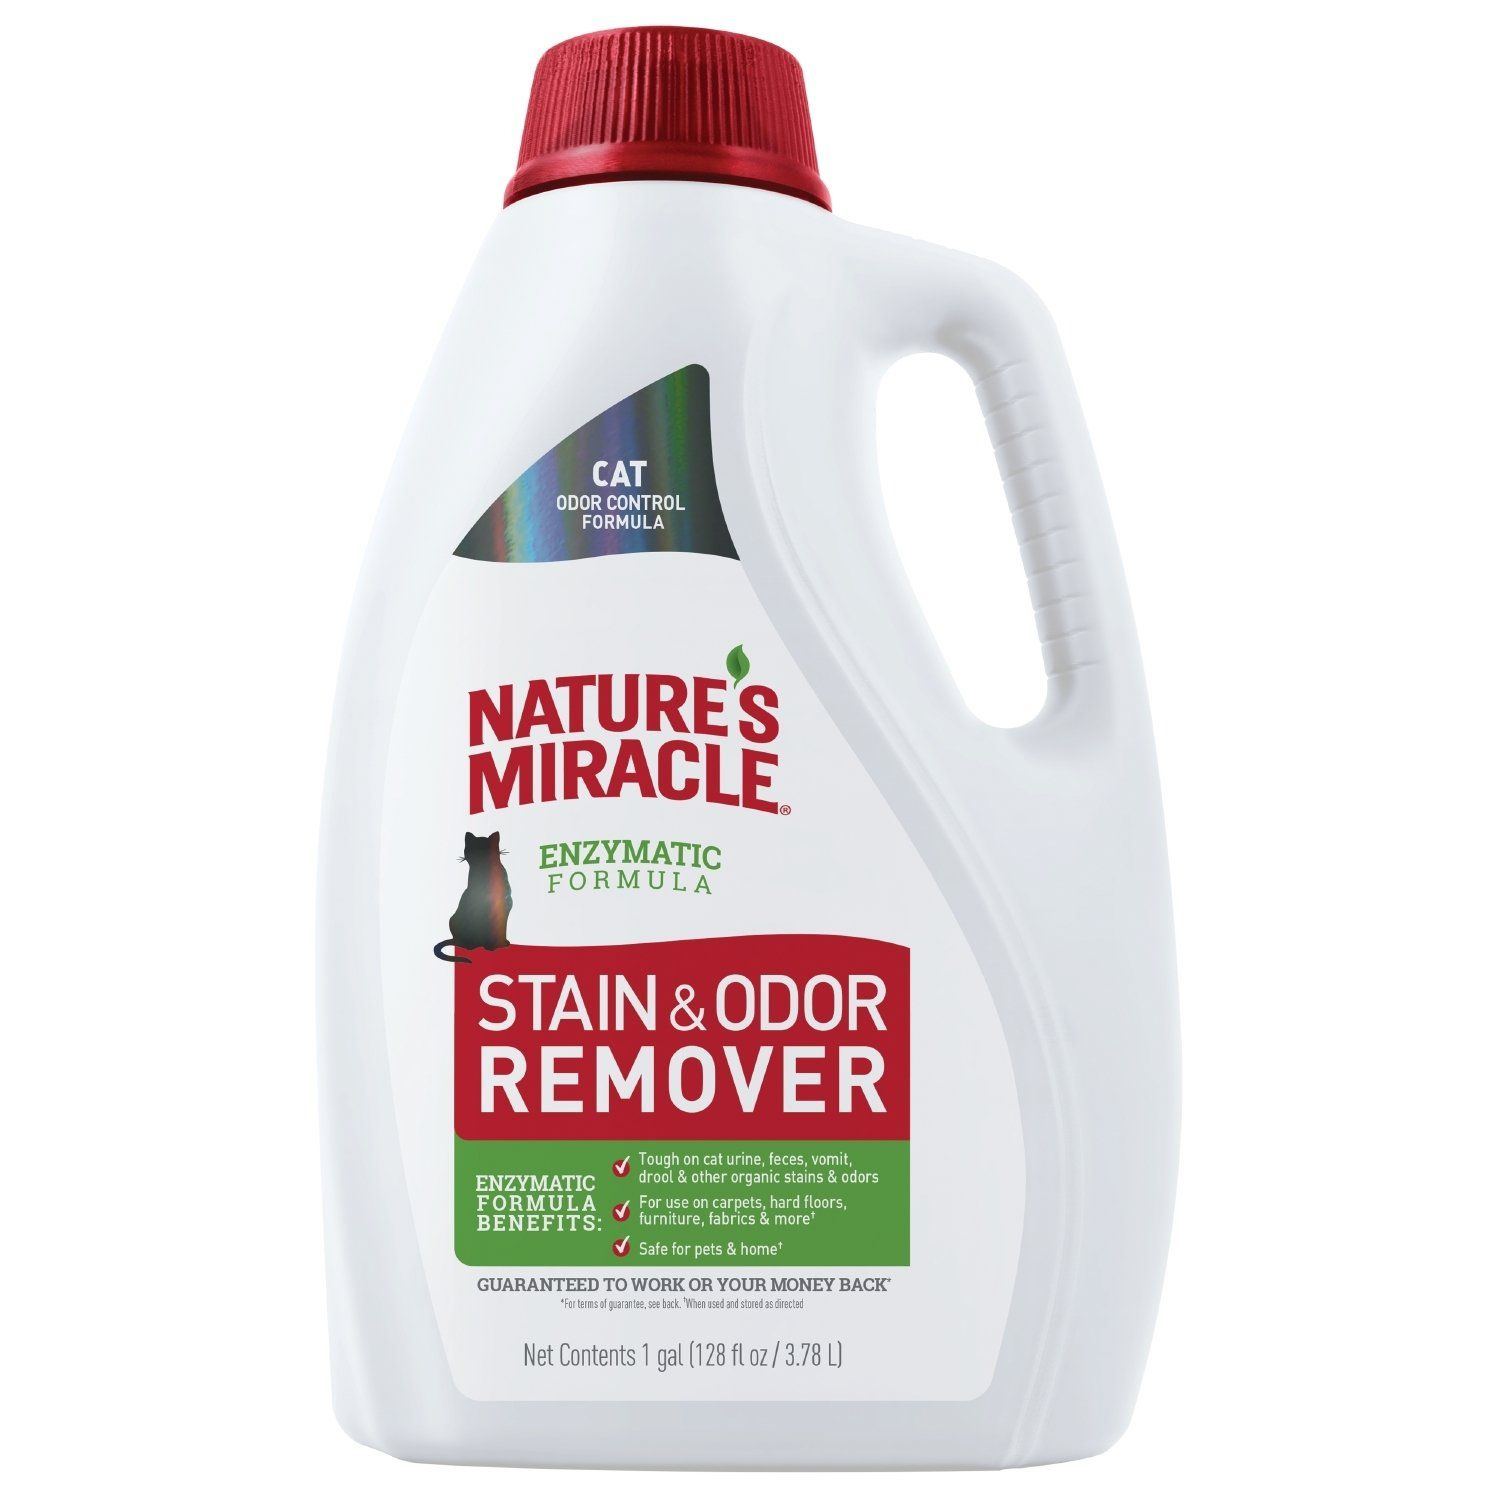 Nature's Miracle Cat Stain and Odor Remover, New Odor